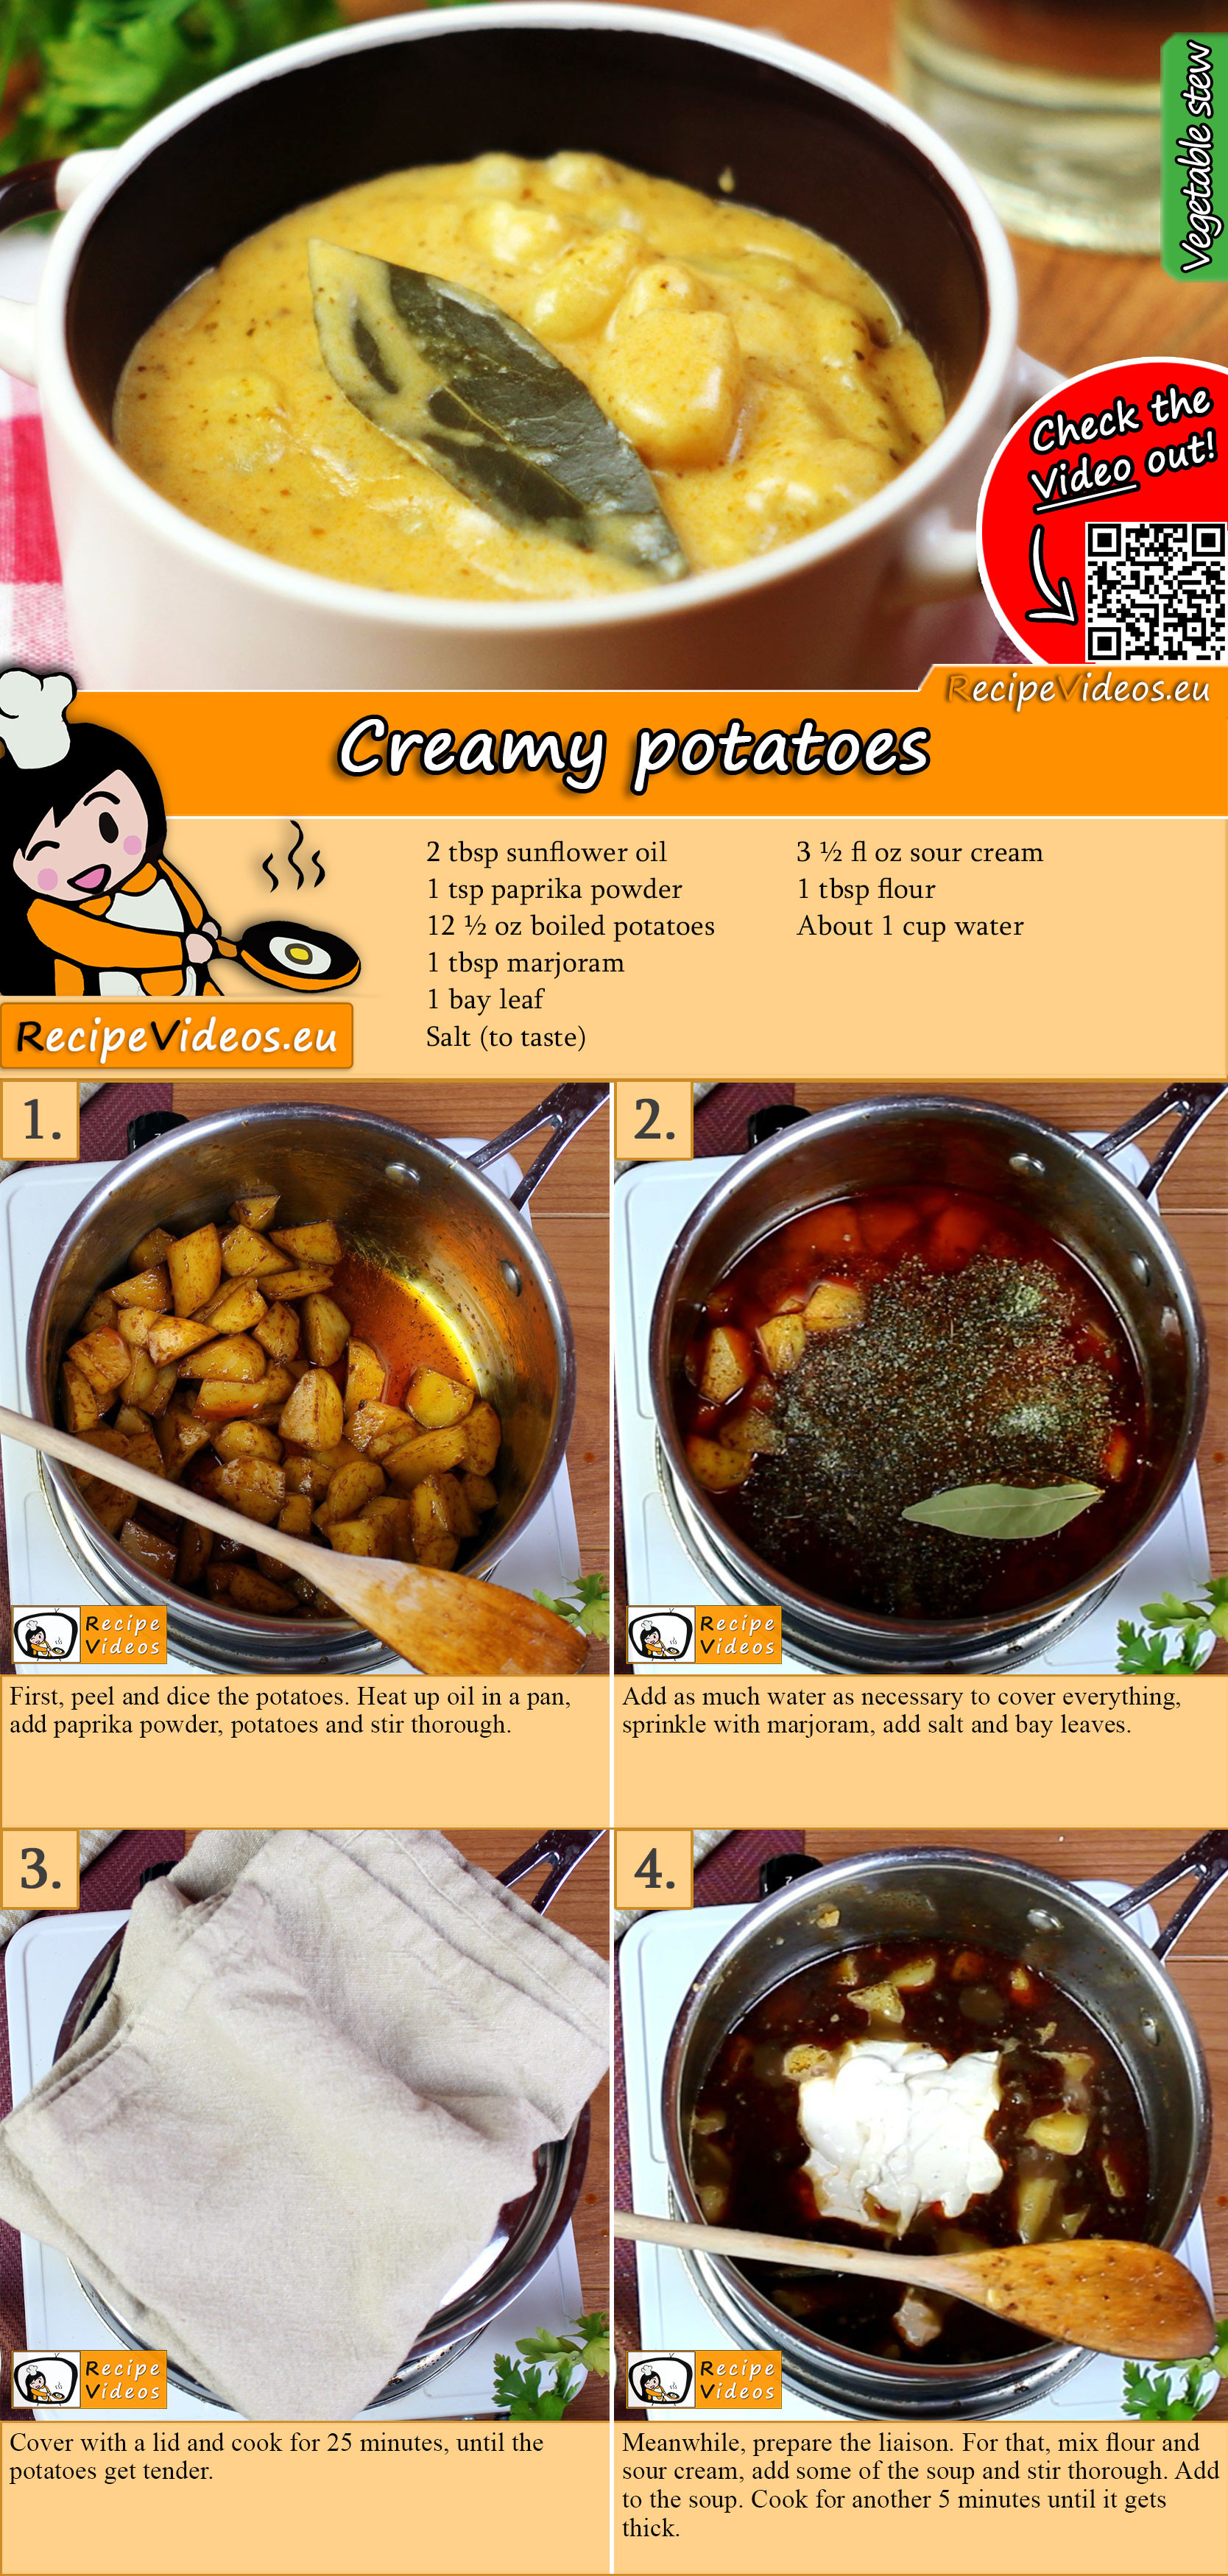 Creamy potatoes recipe with video